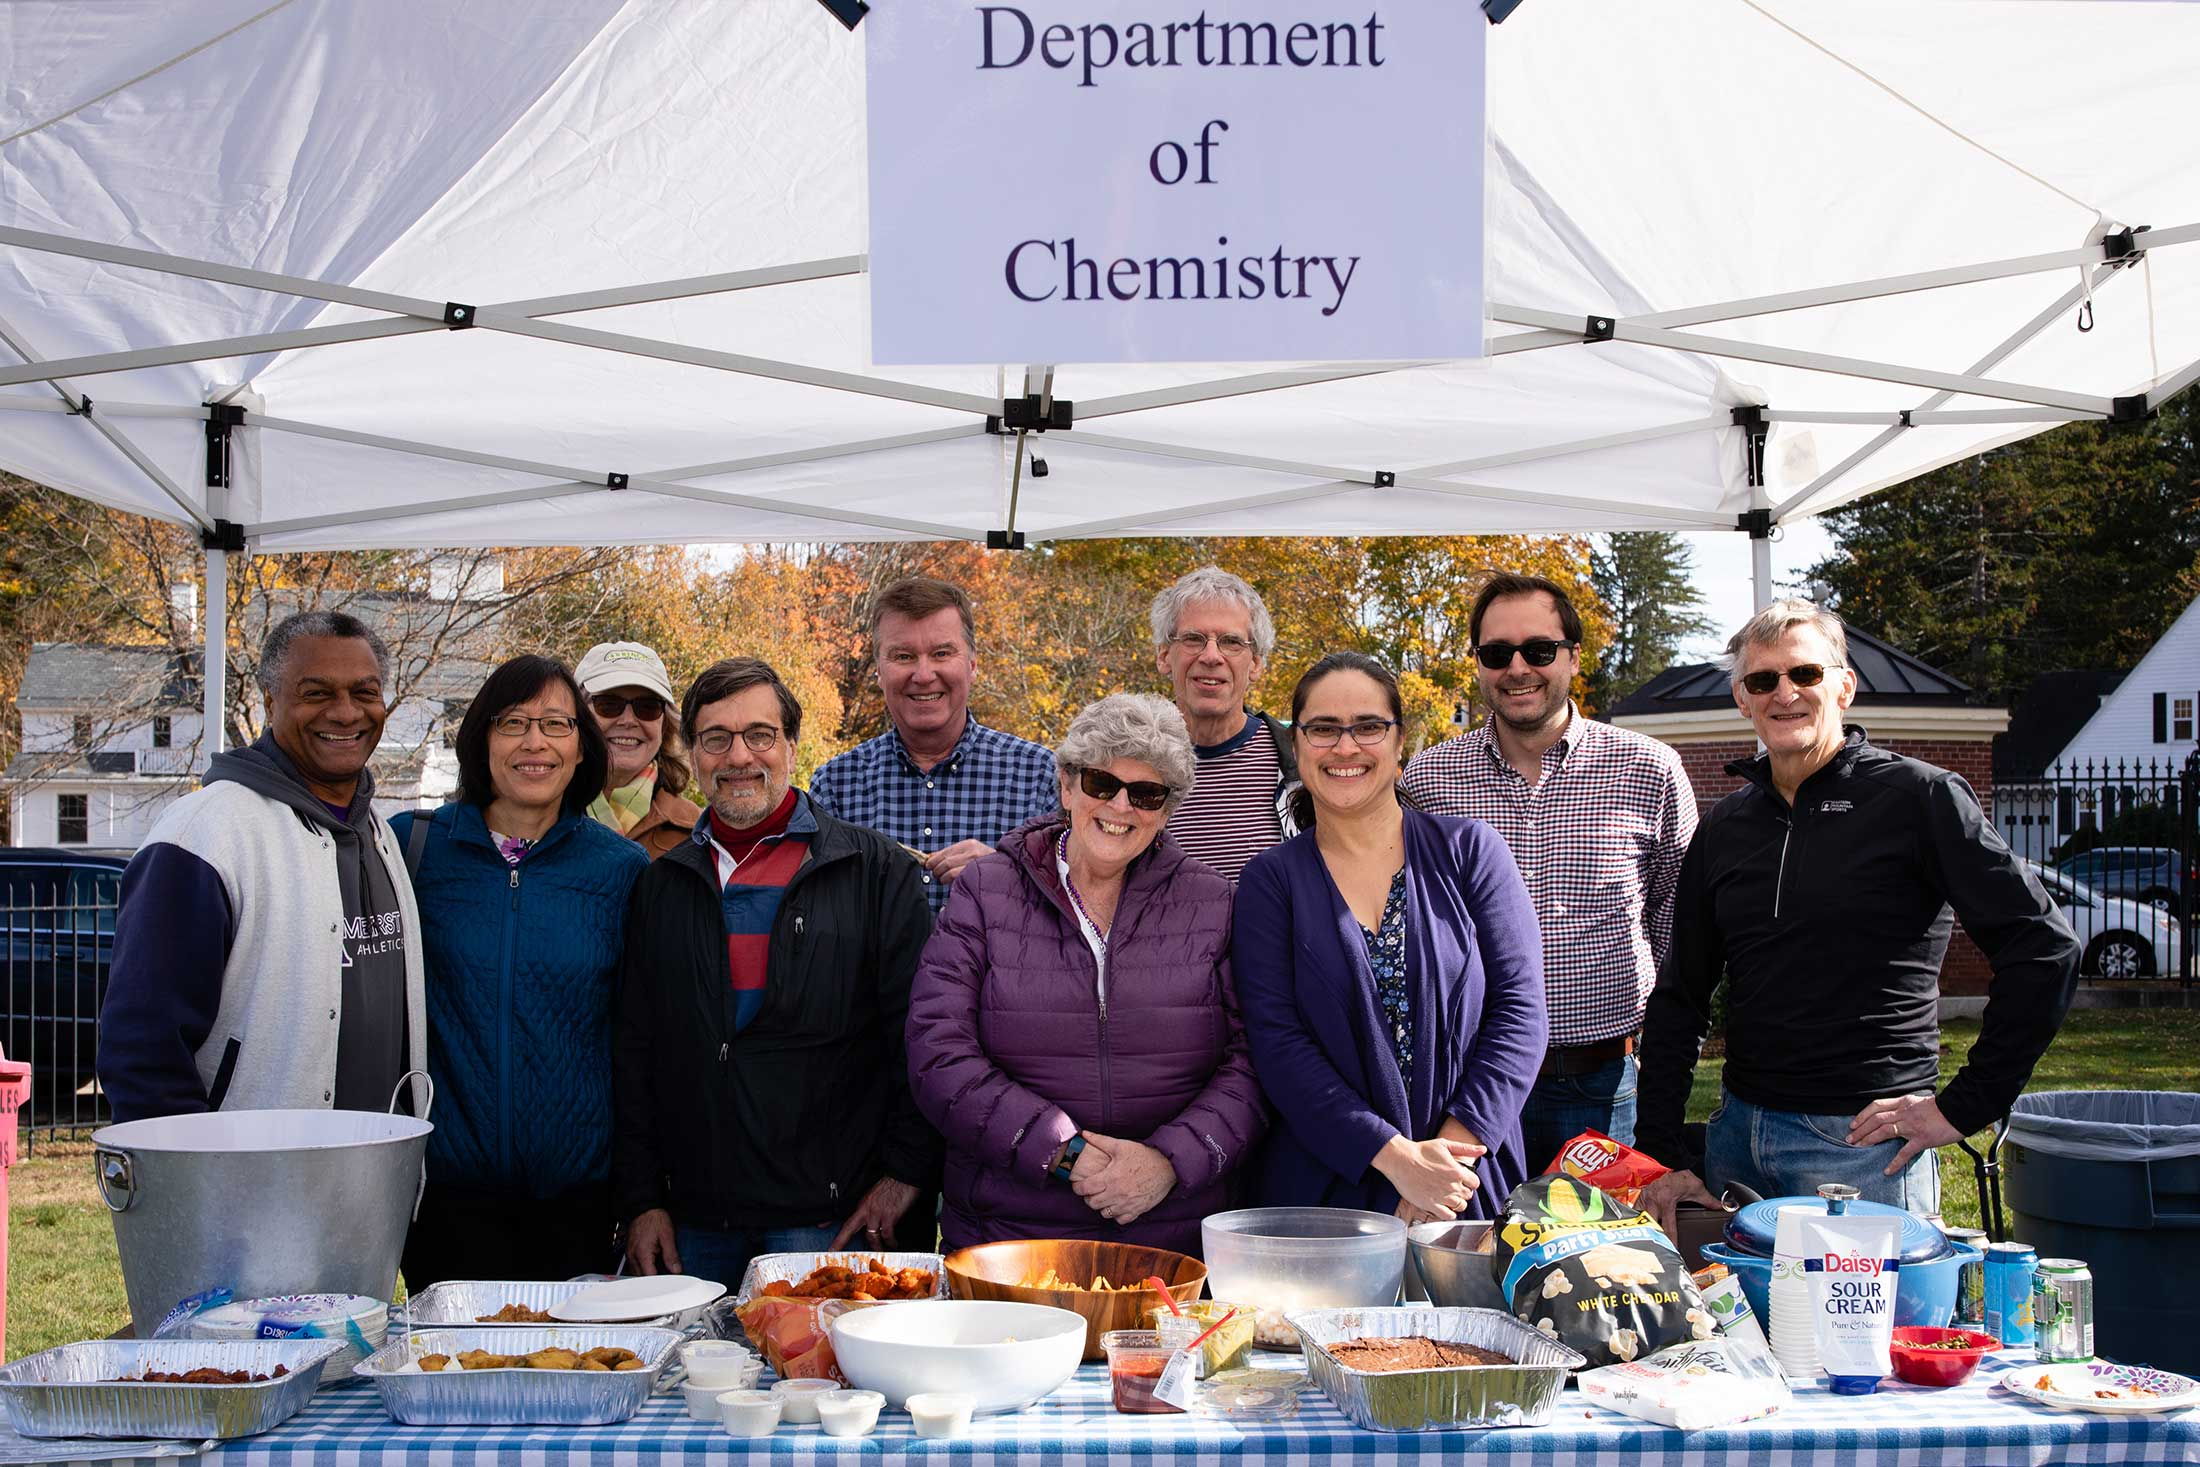 The Department of Chemistry hosting a reception